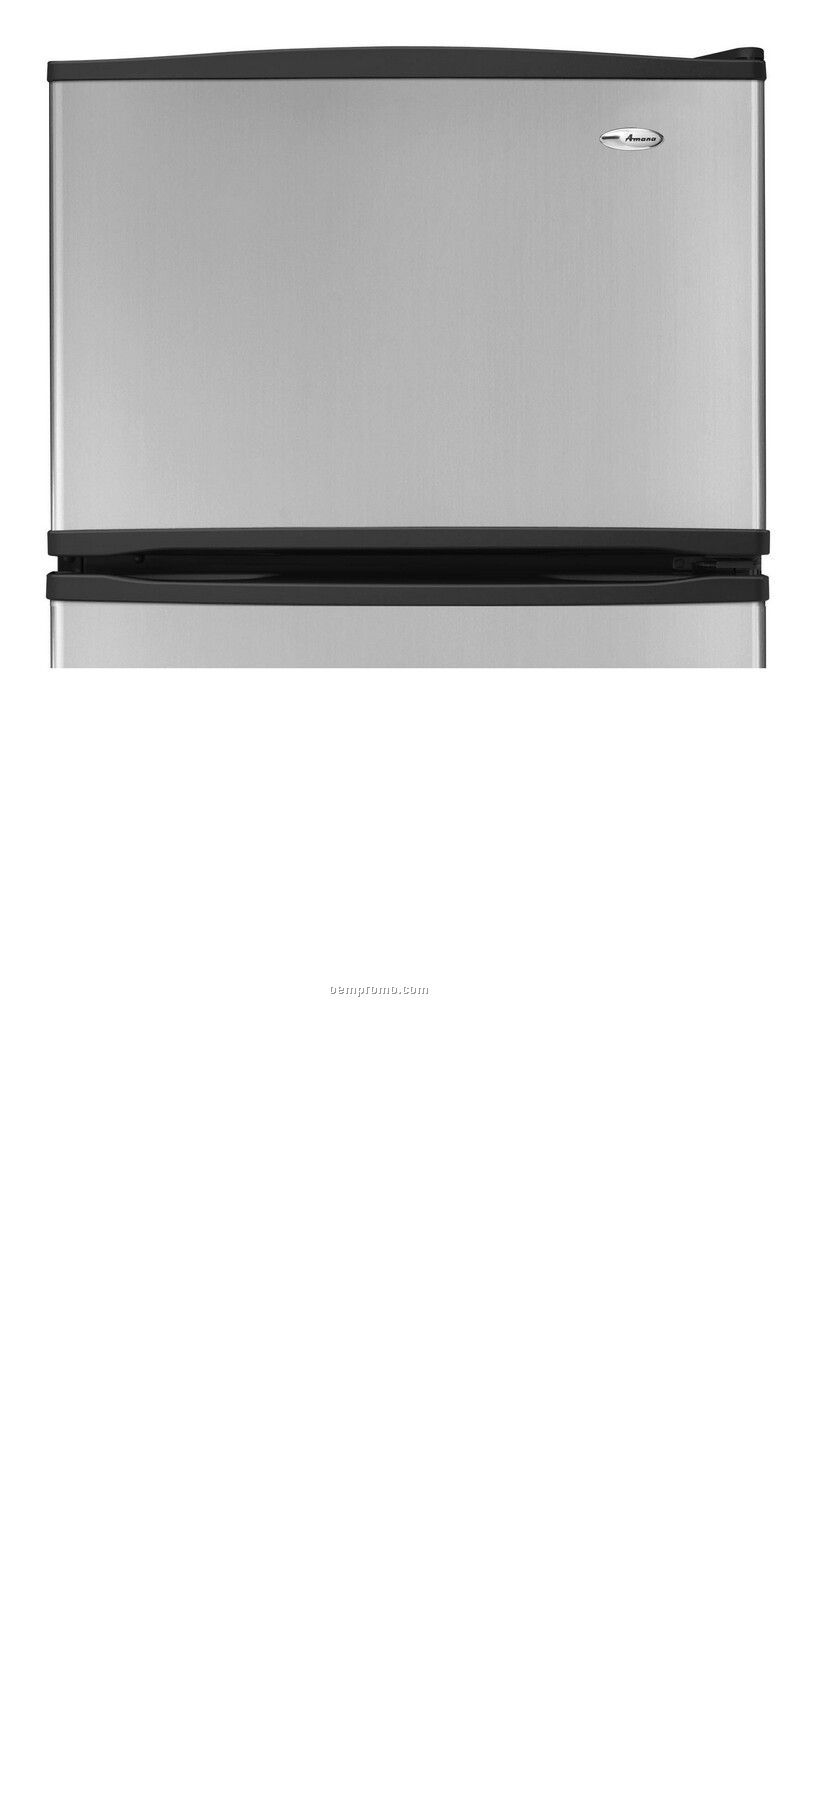 Amana 17 3 5 Cubic Foot Top Freezer Refrigerator